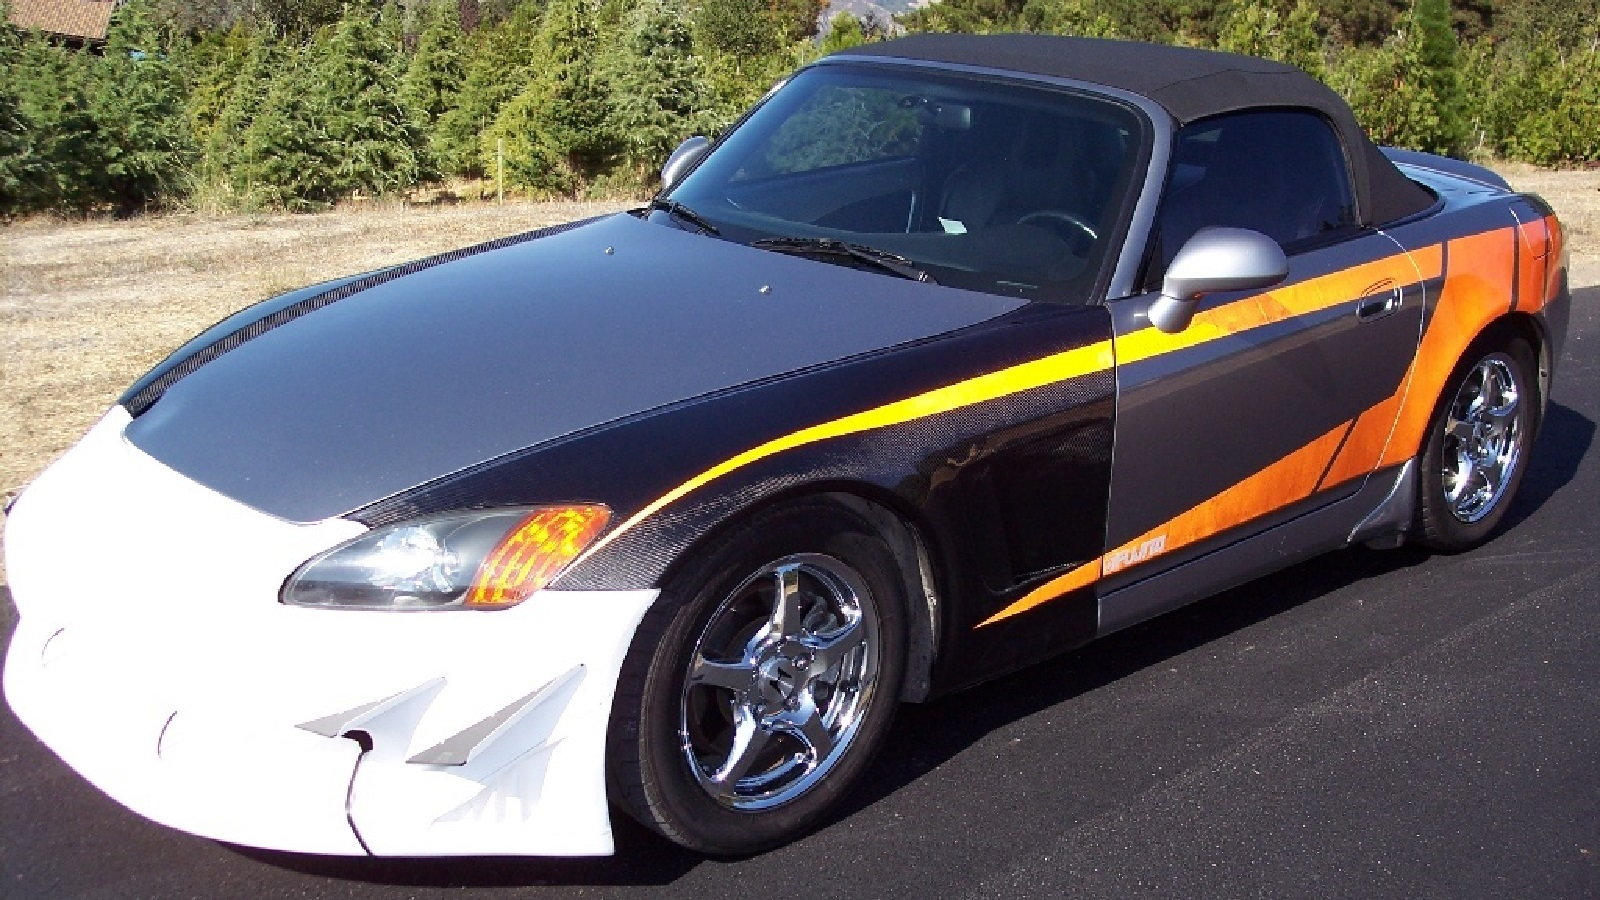 What Mods Do You Regret on Your S2000?